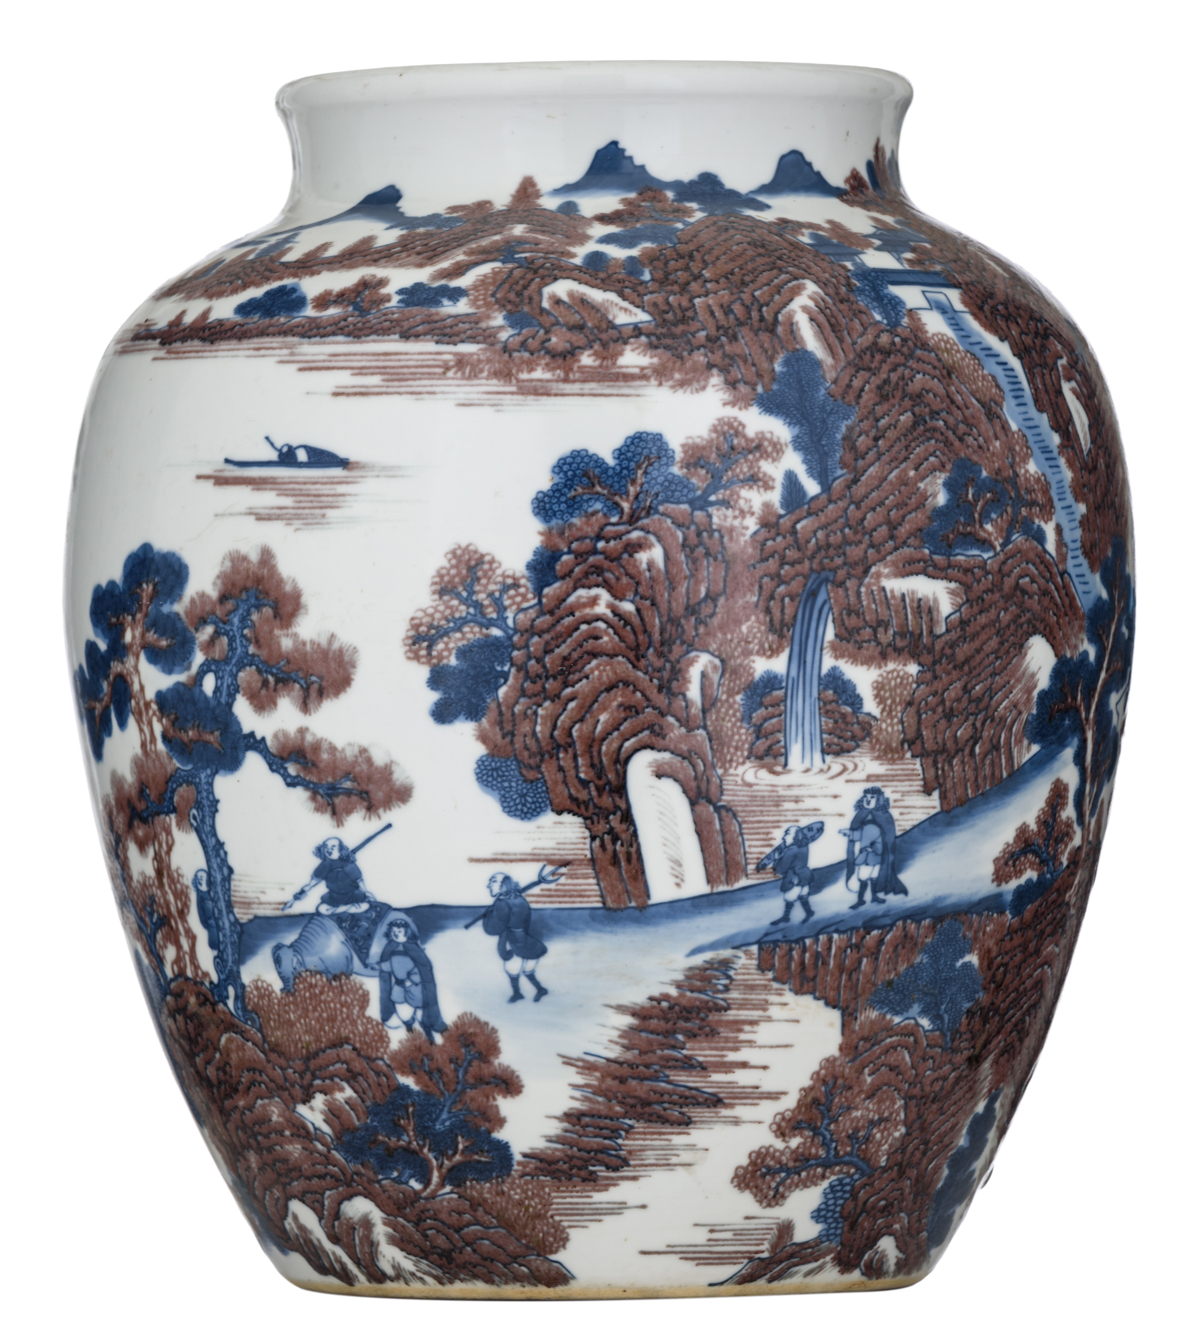 Lot 31 - A blue and white and copper red jar in the Ming style decorated with travellers in a mountainous